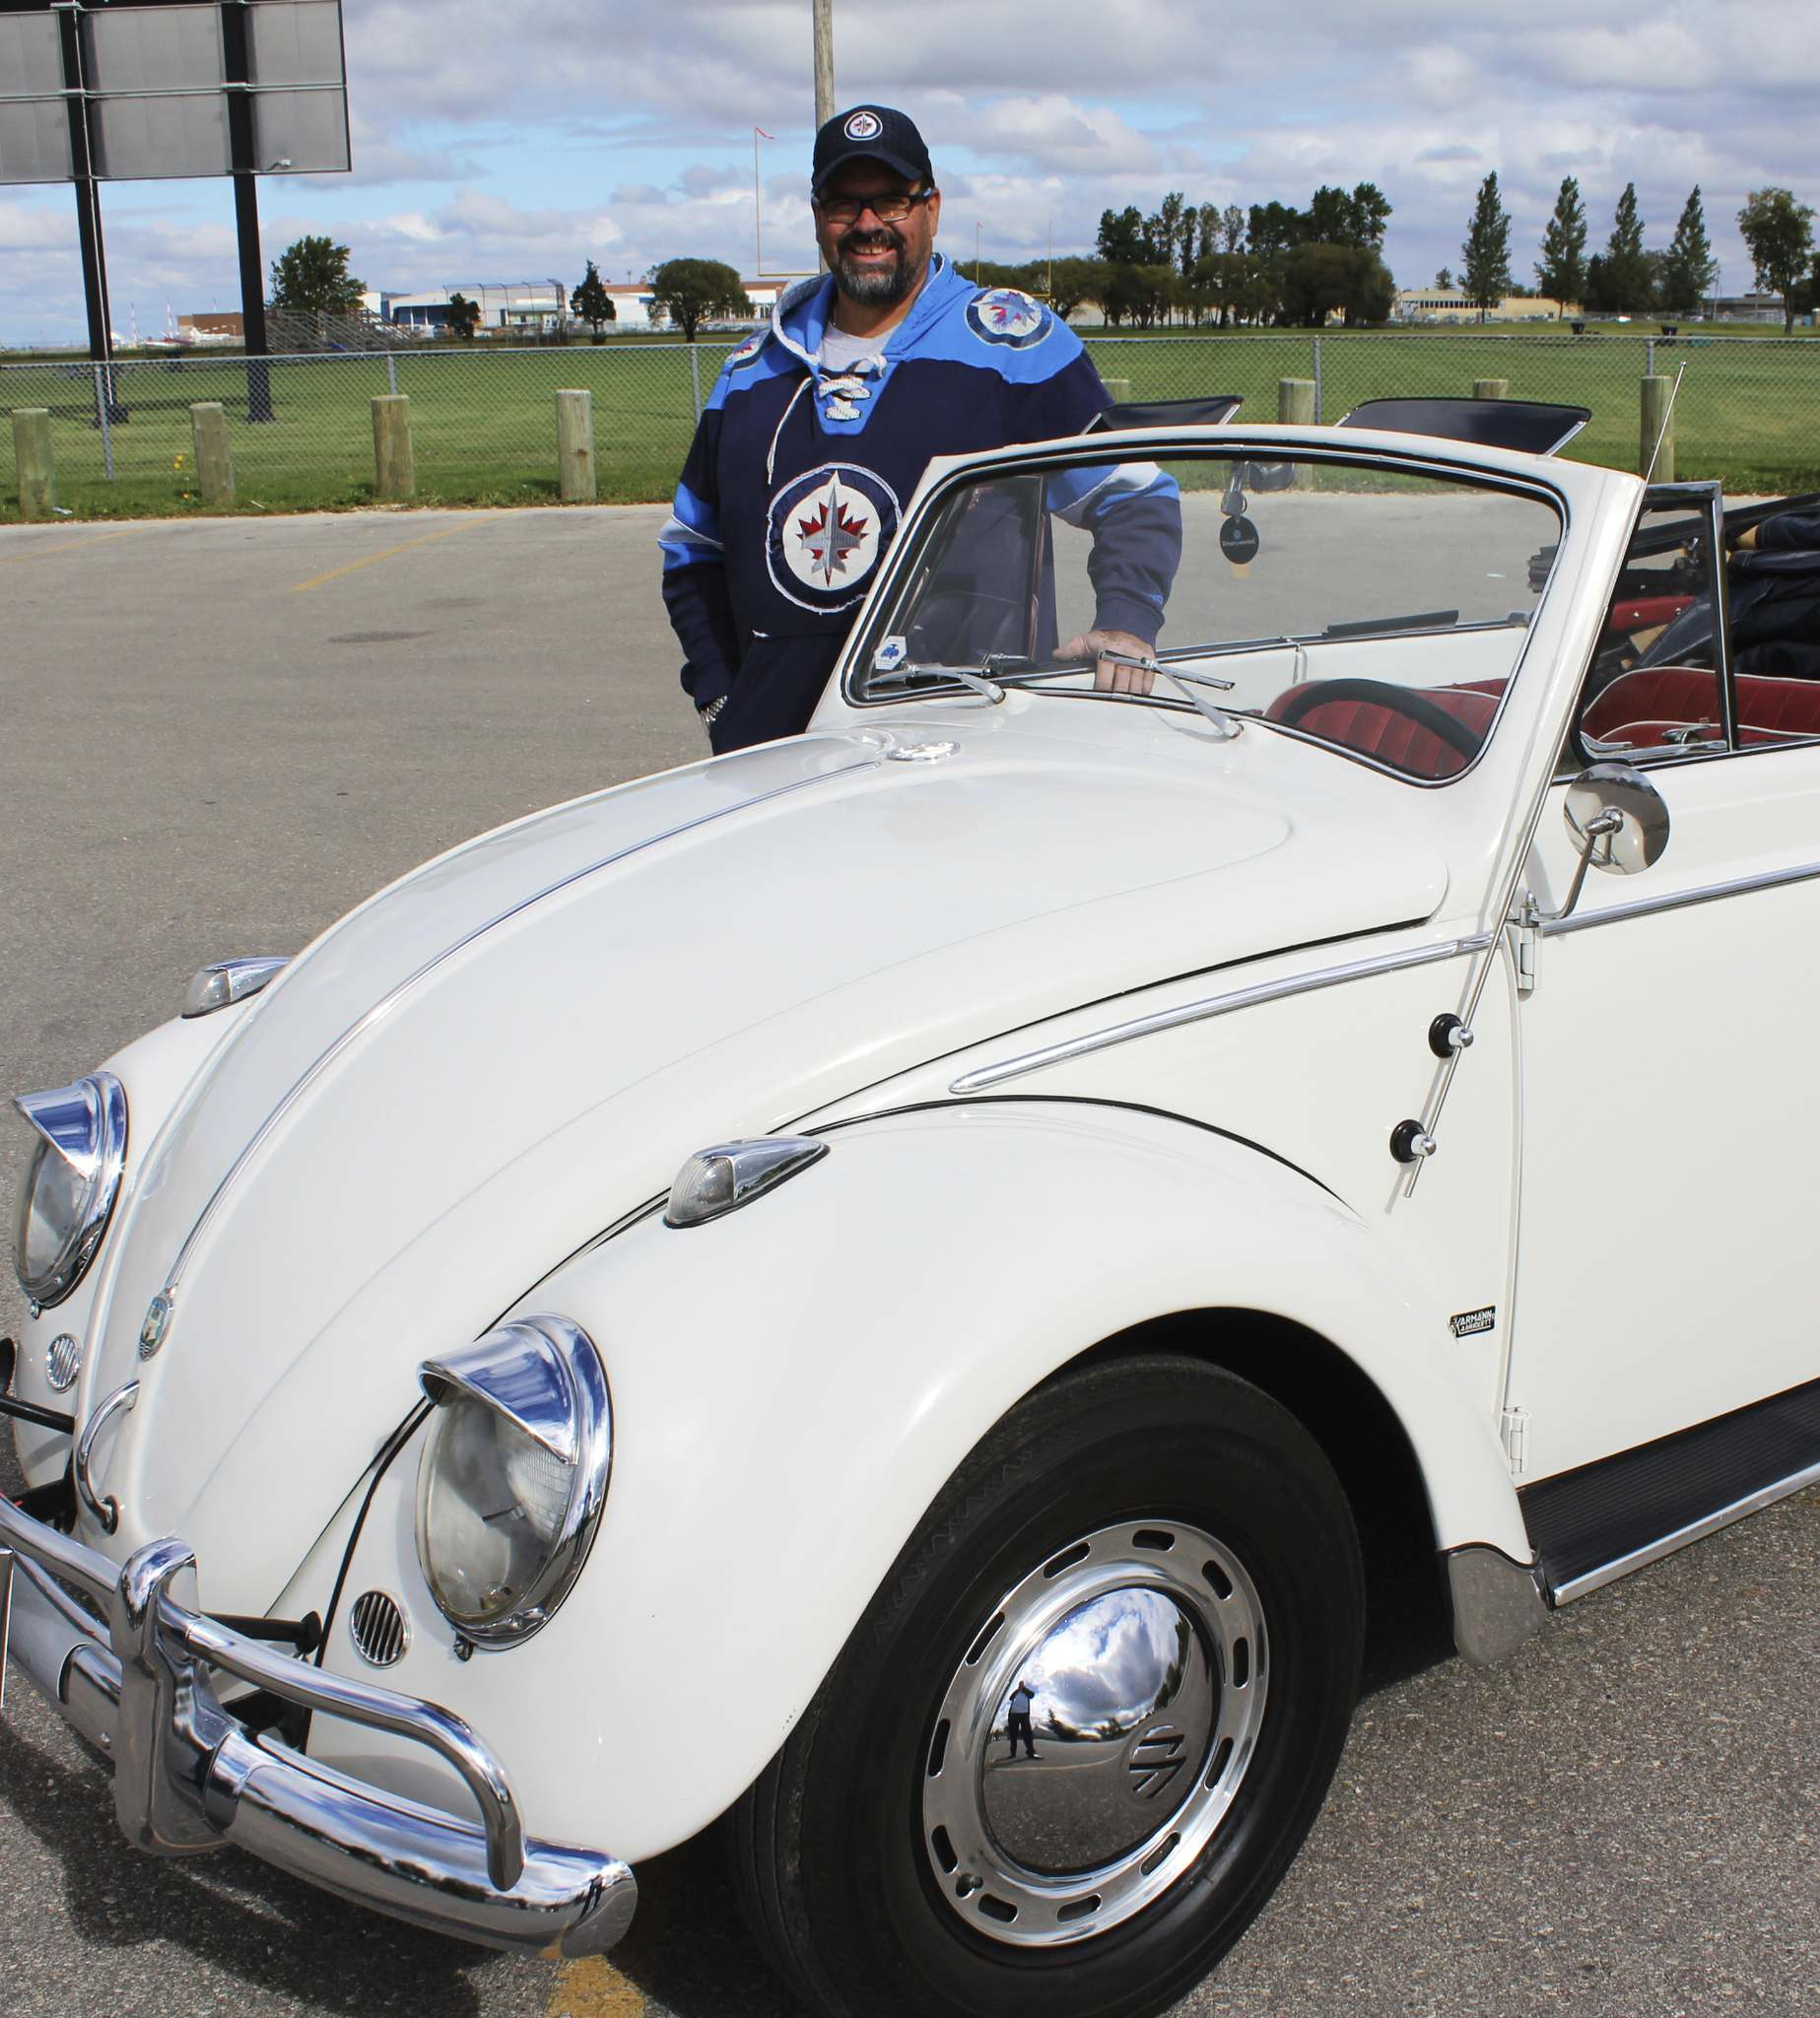 Doug Ennis has thought about selling his classic ride in the past, but just can't because of the sentimental value.